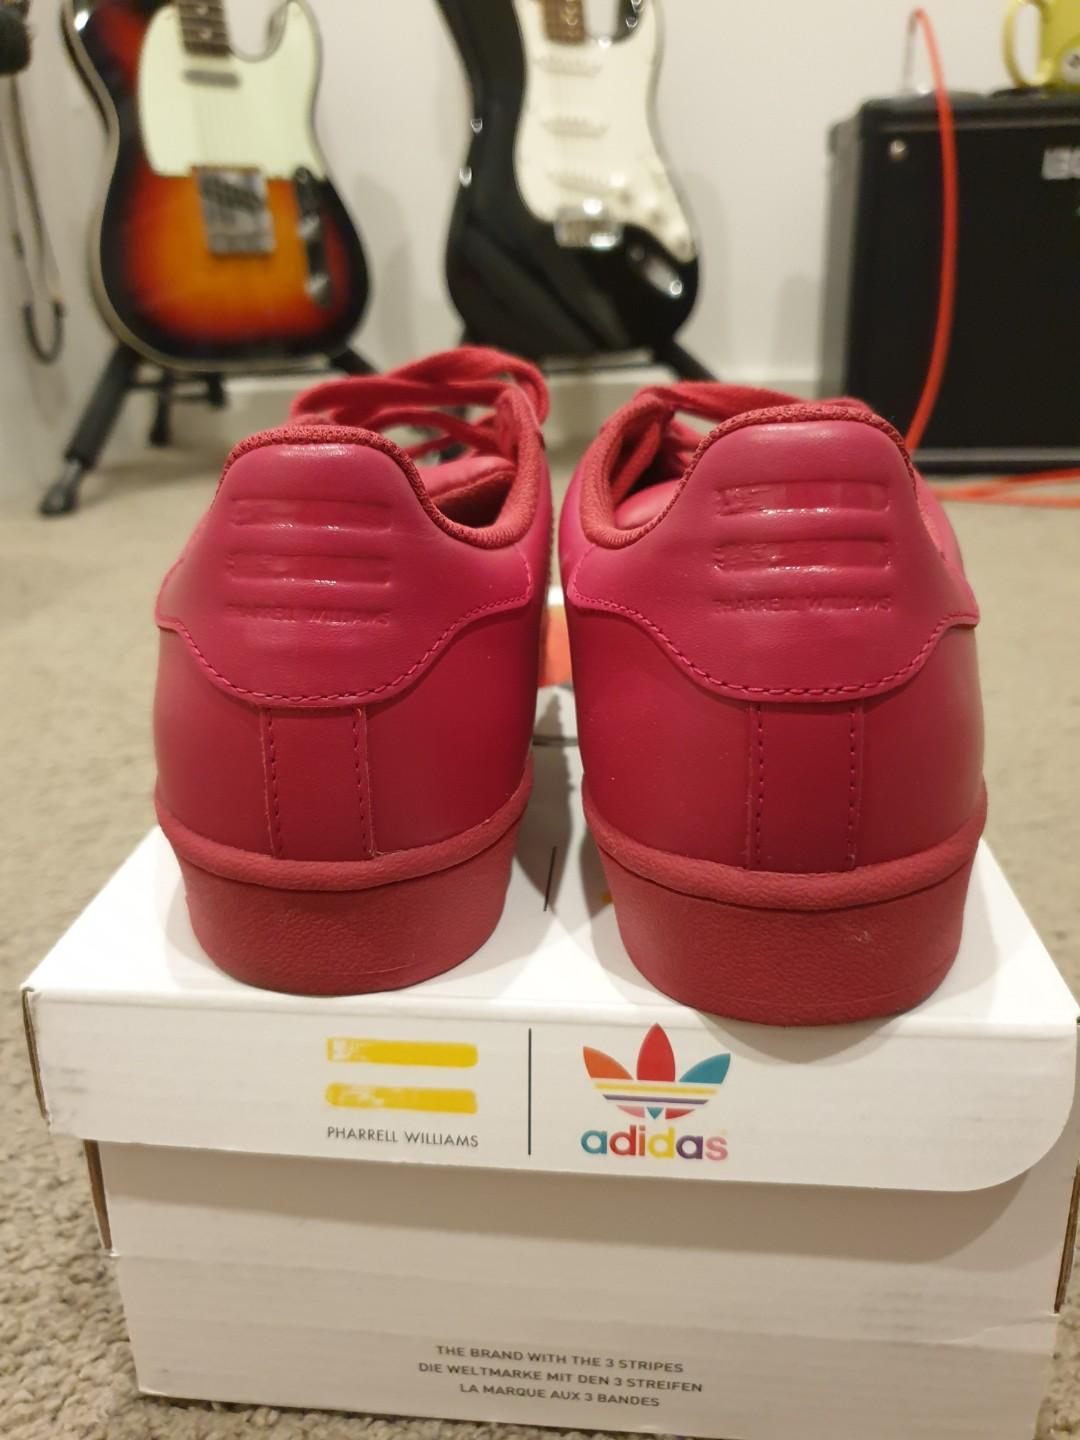 Adidas x Pharell Williams Superstar Supercolor Pack Hot Pink Womens US 7